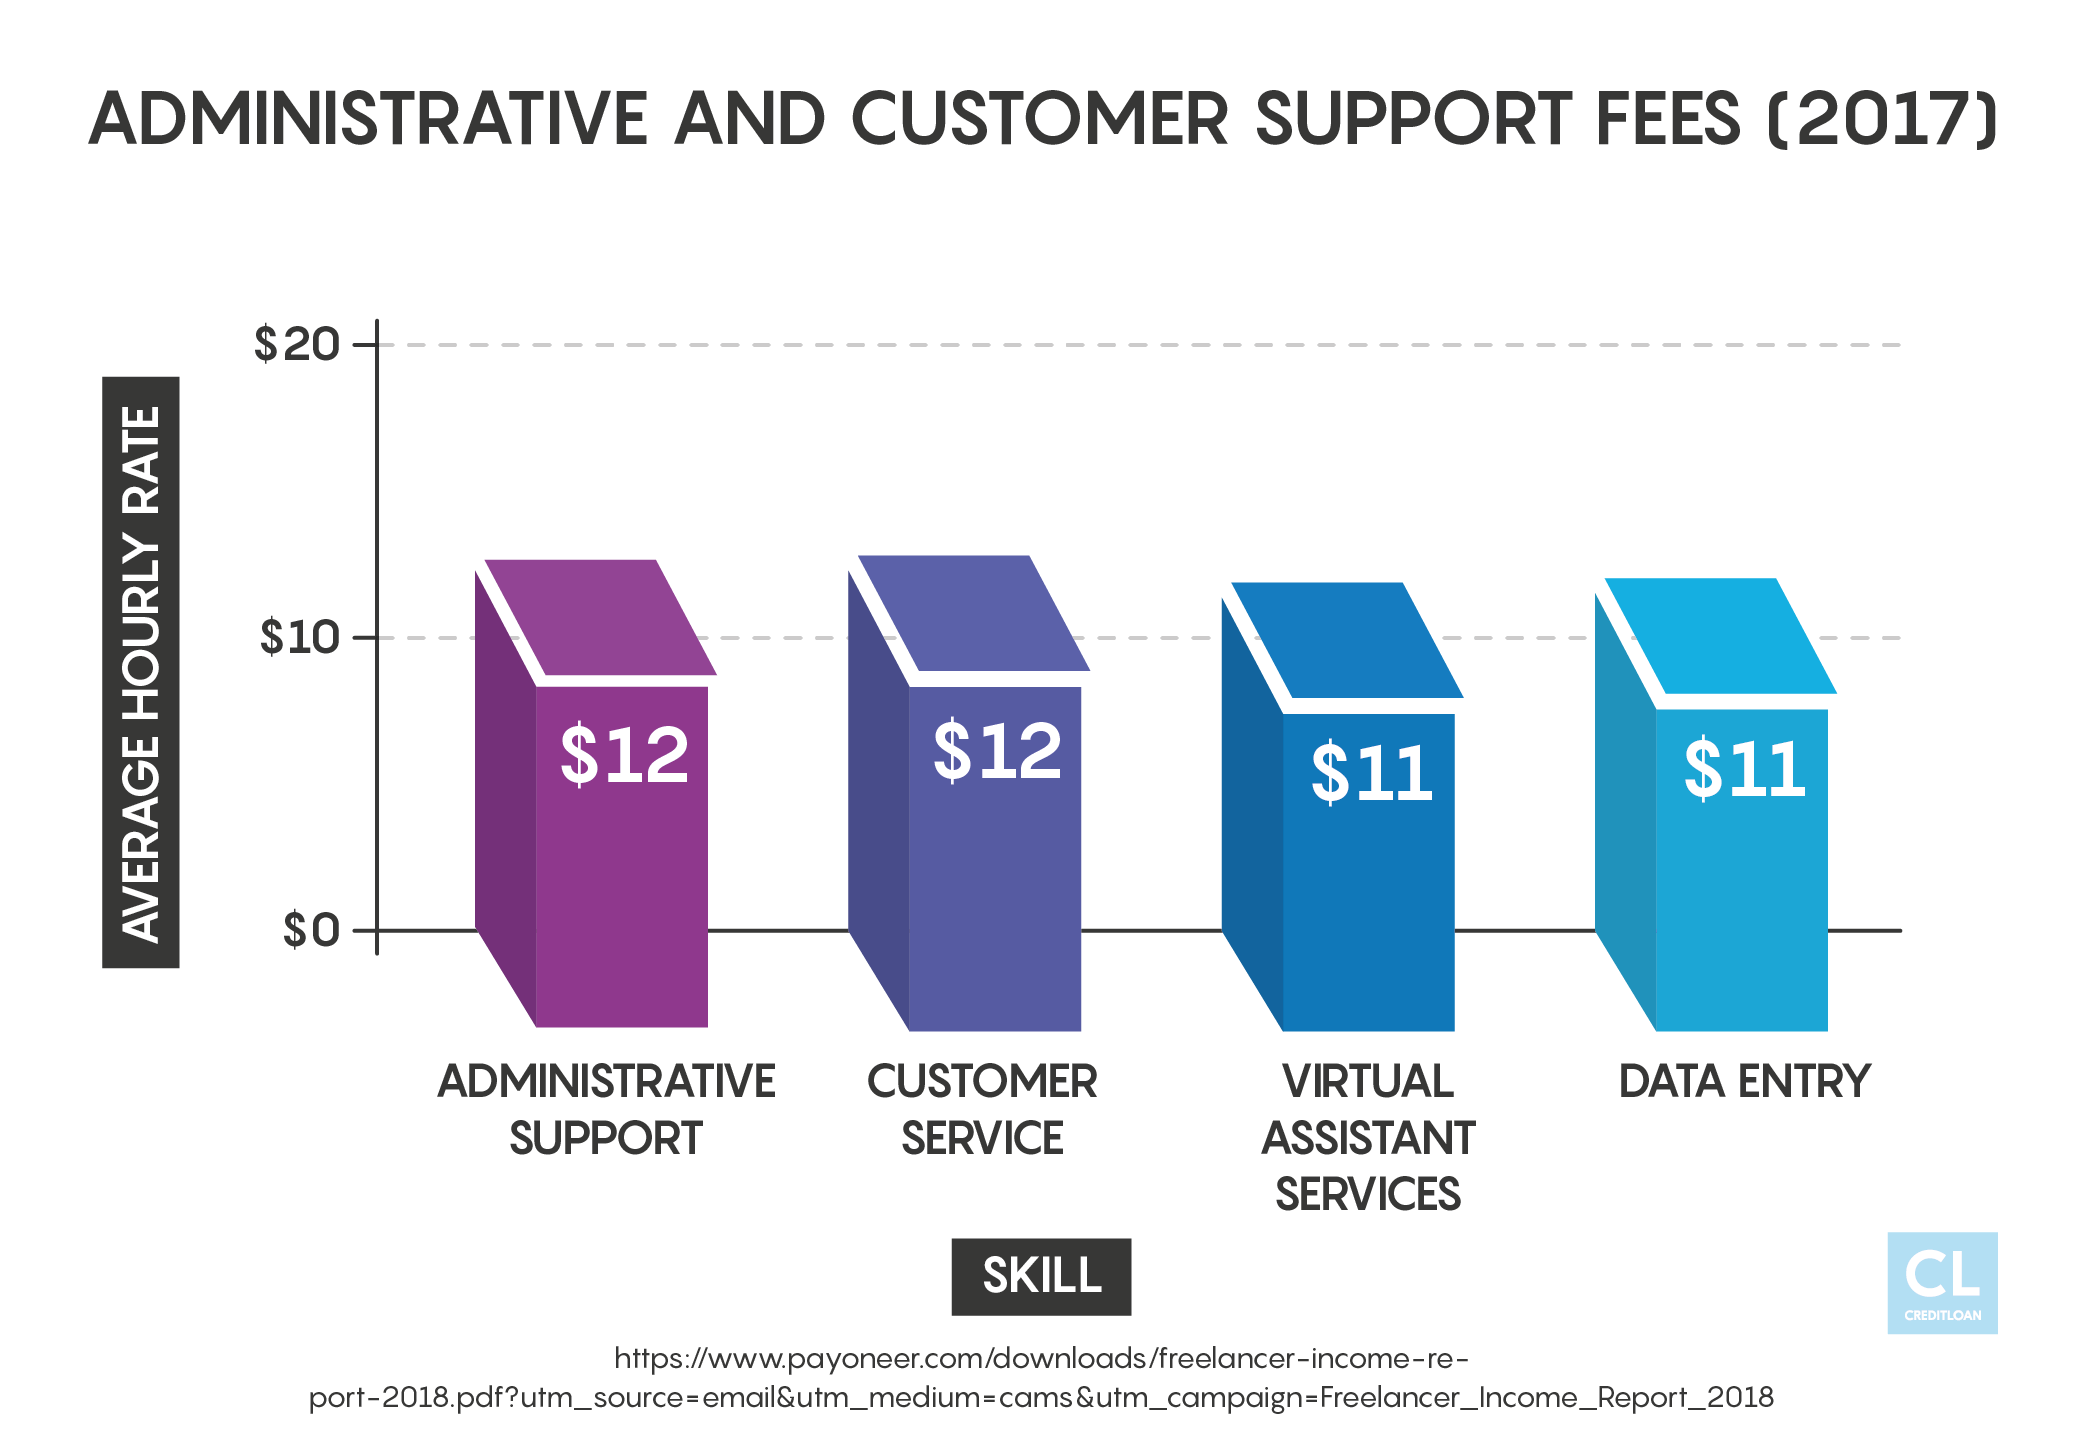 Administrative and Customer Support Fees